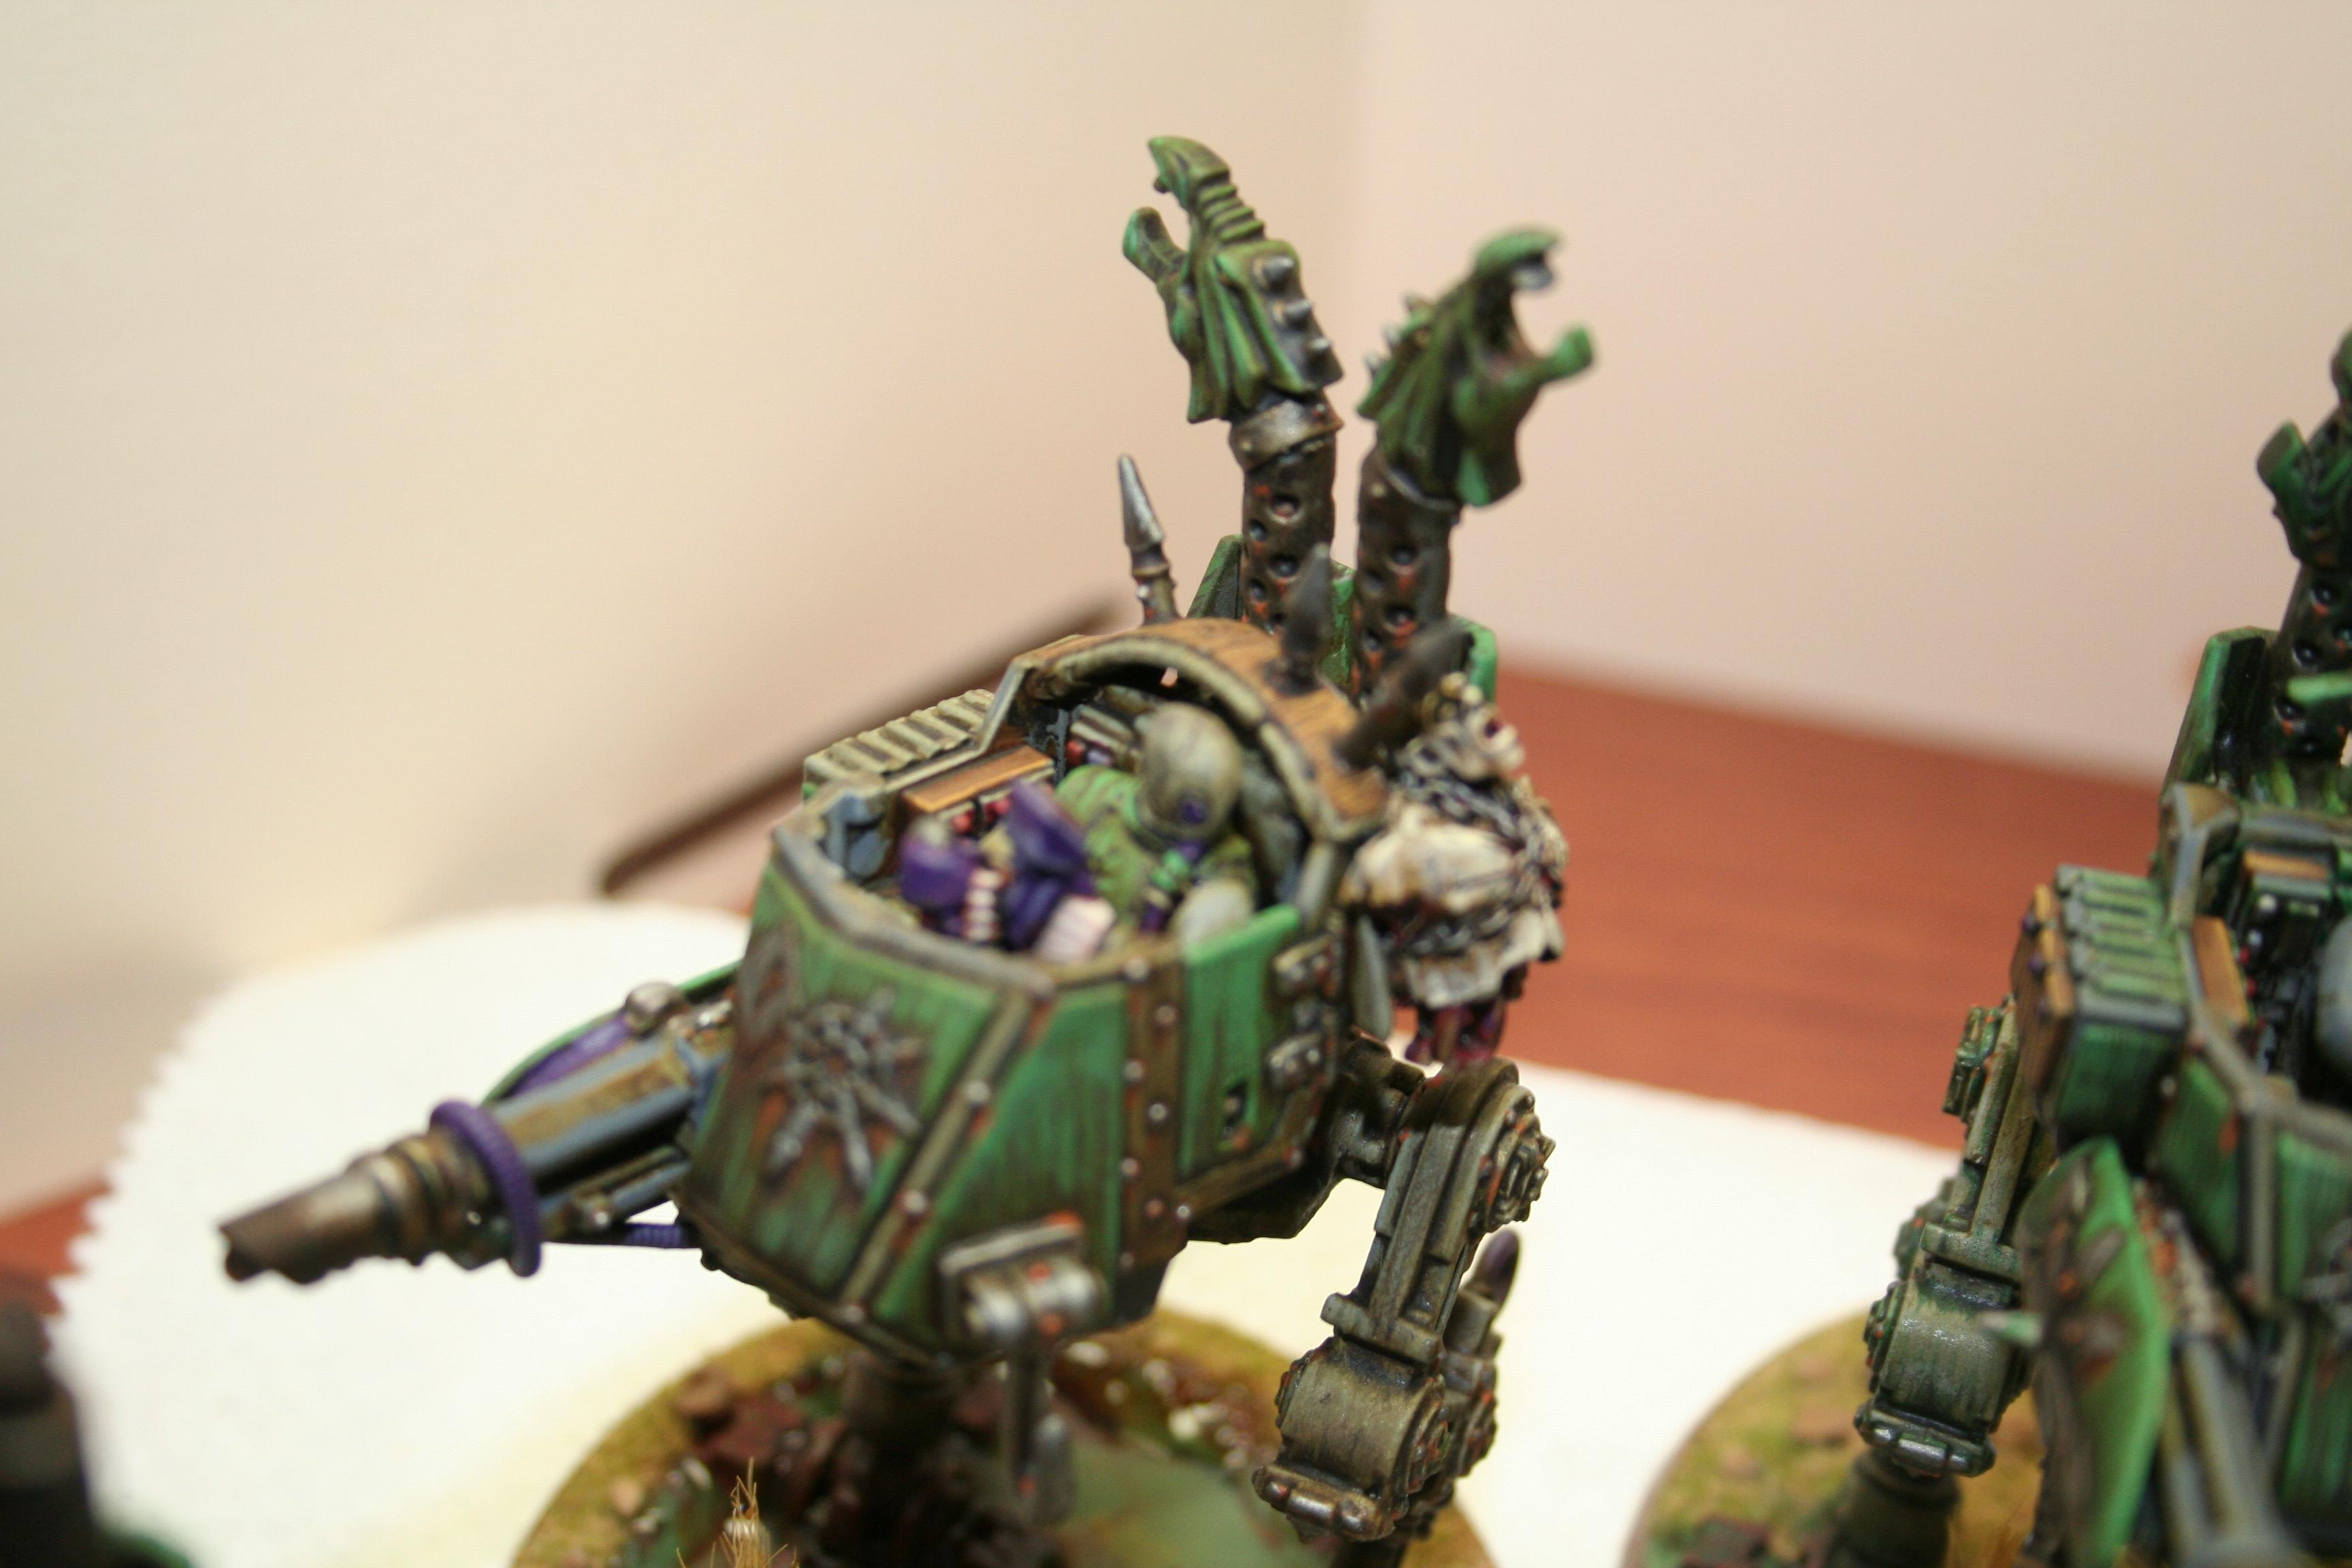 Chaos, Imperial Guard, Nurgle, Sentinel, Traitor, Warhammer 40,000